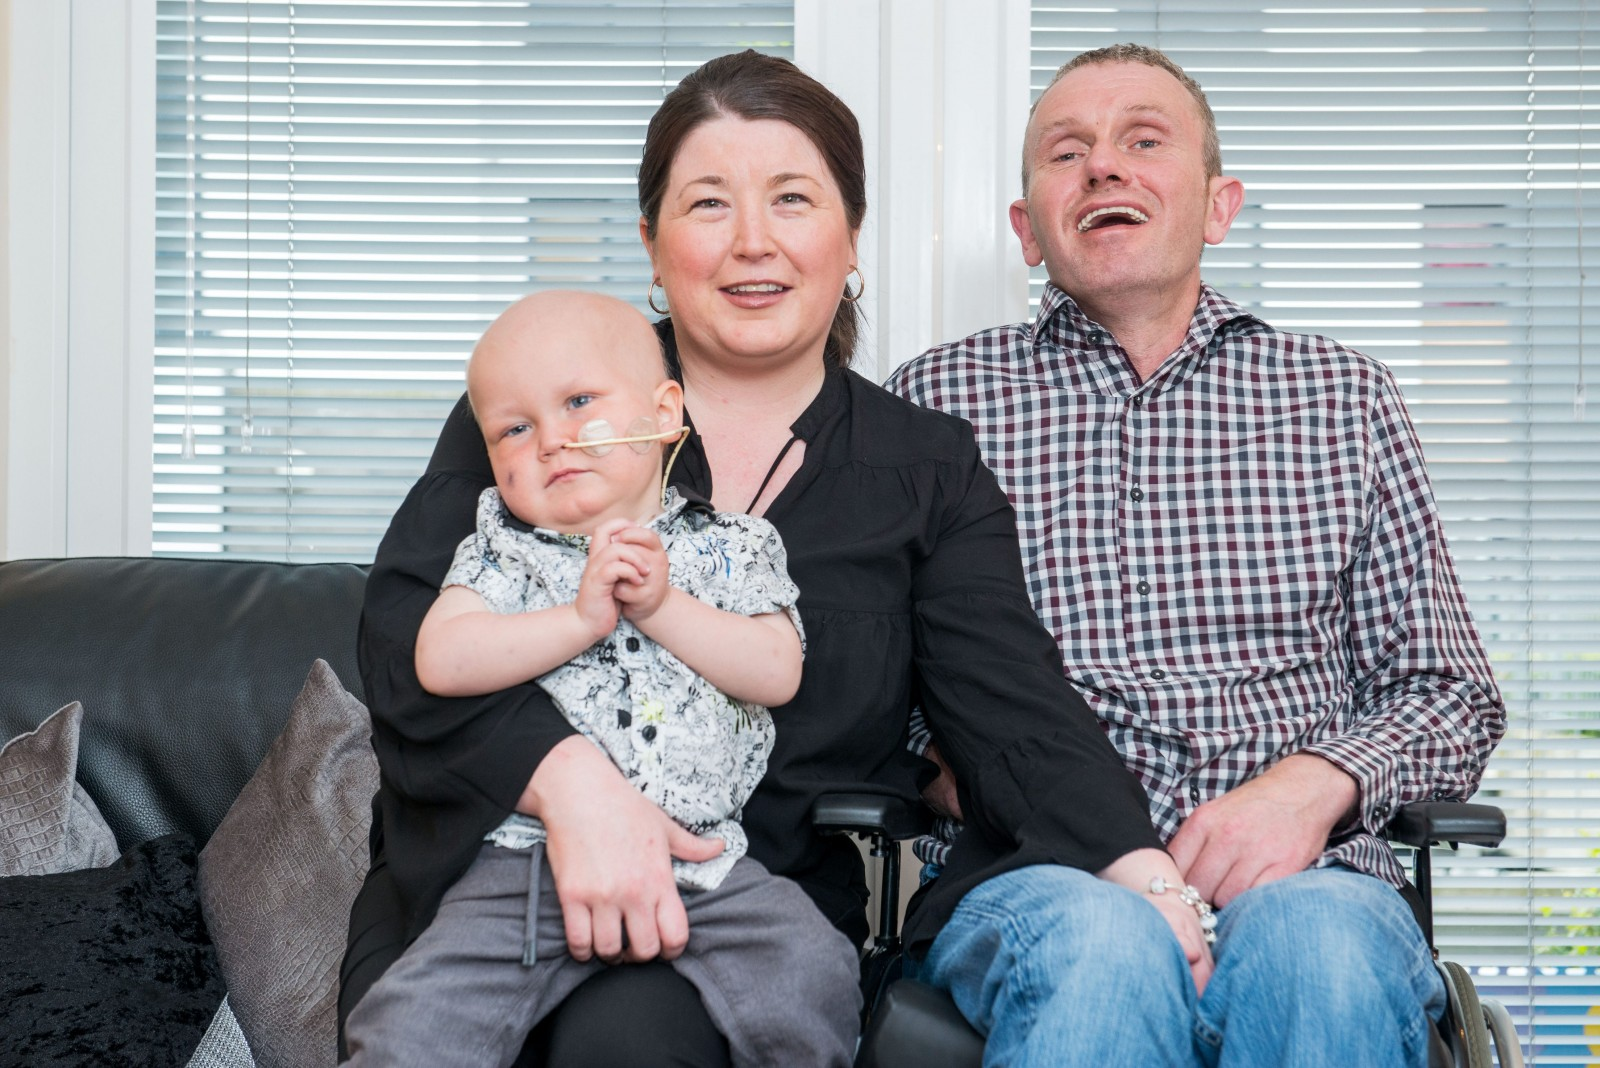 'We won't give up on him.' A desperate family's fight to stay together and save their dying son